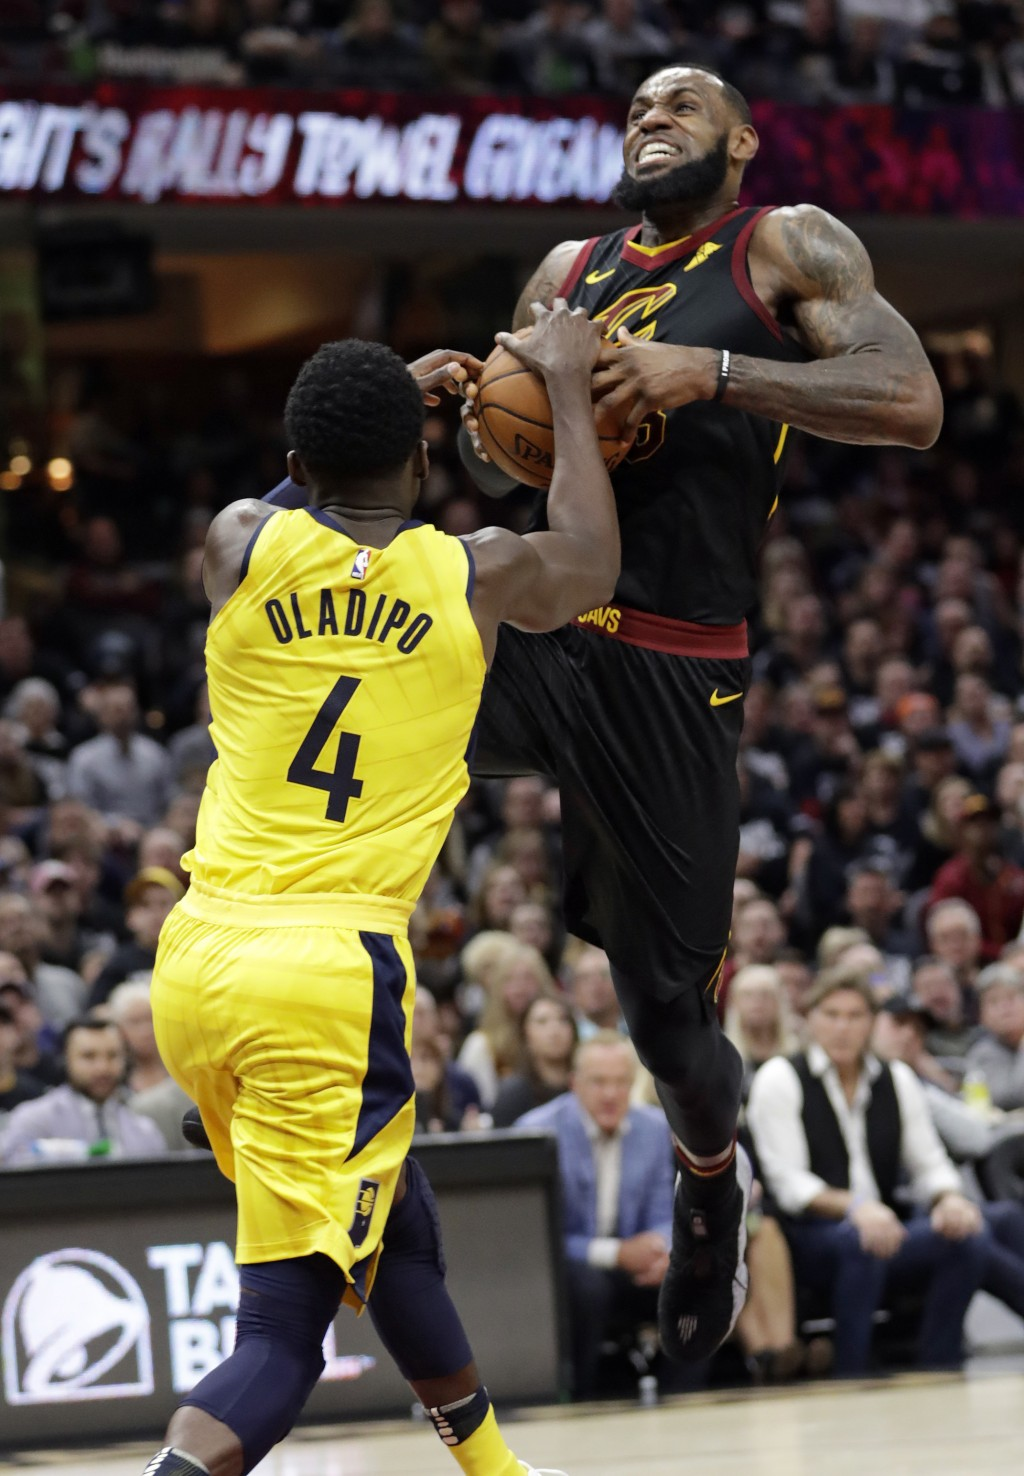 Cleveland Cavaliers' LeBron James (23) drives to the basket against Indiana Pacers' Victor Oladipo (4) in the first half of a first-round playoff seri